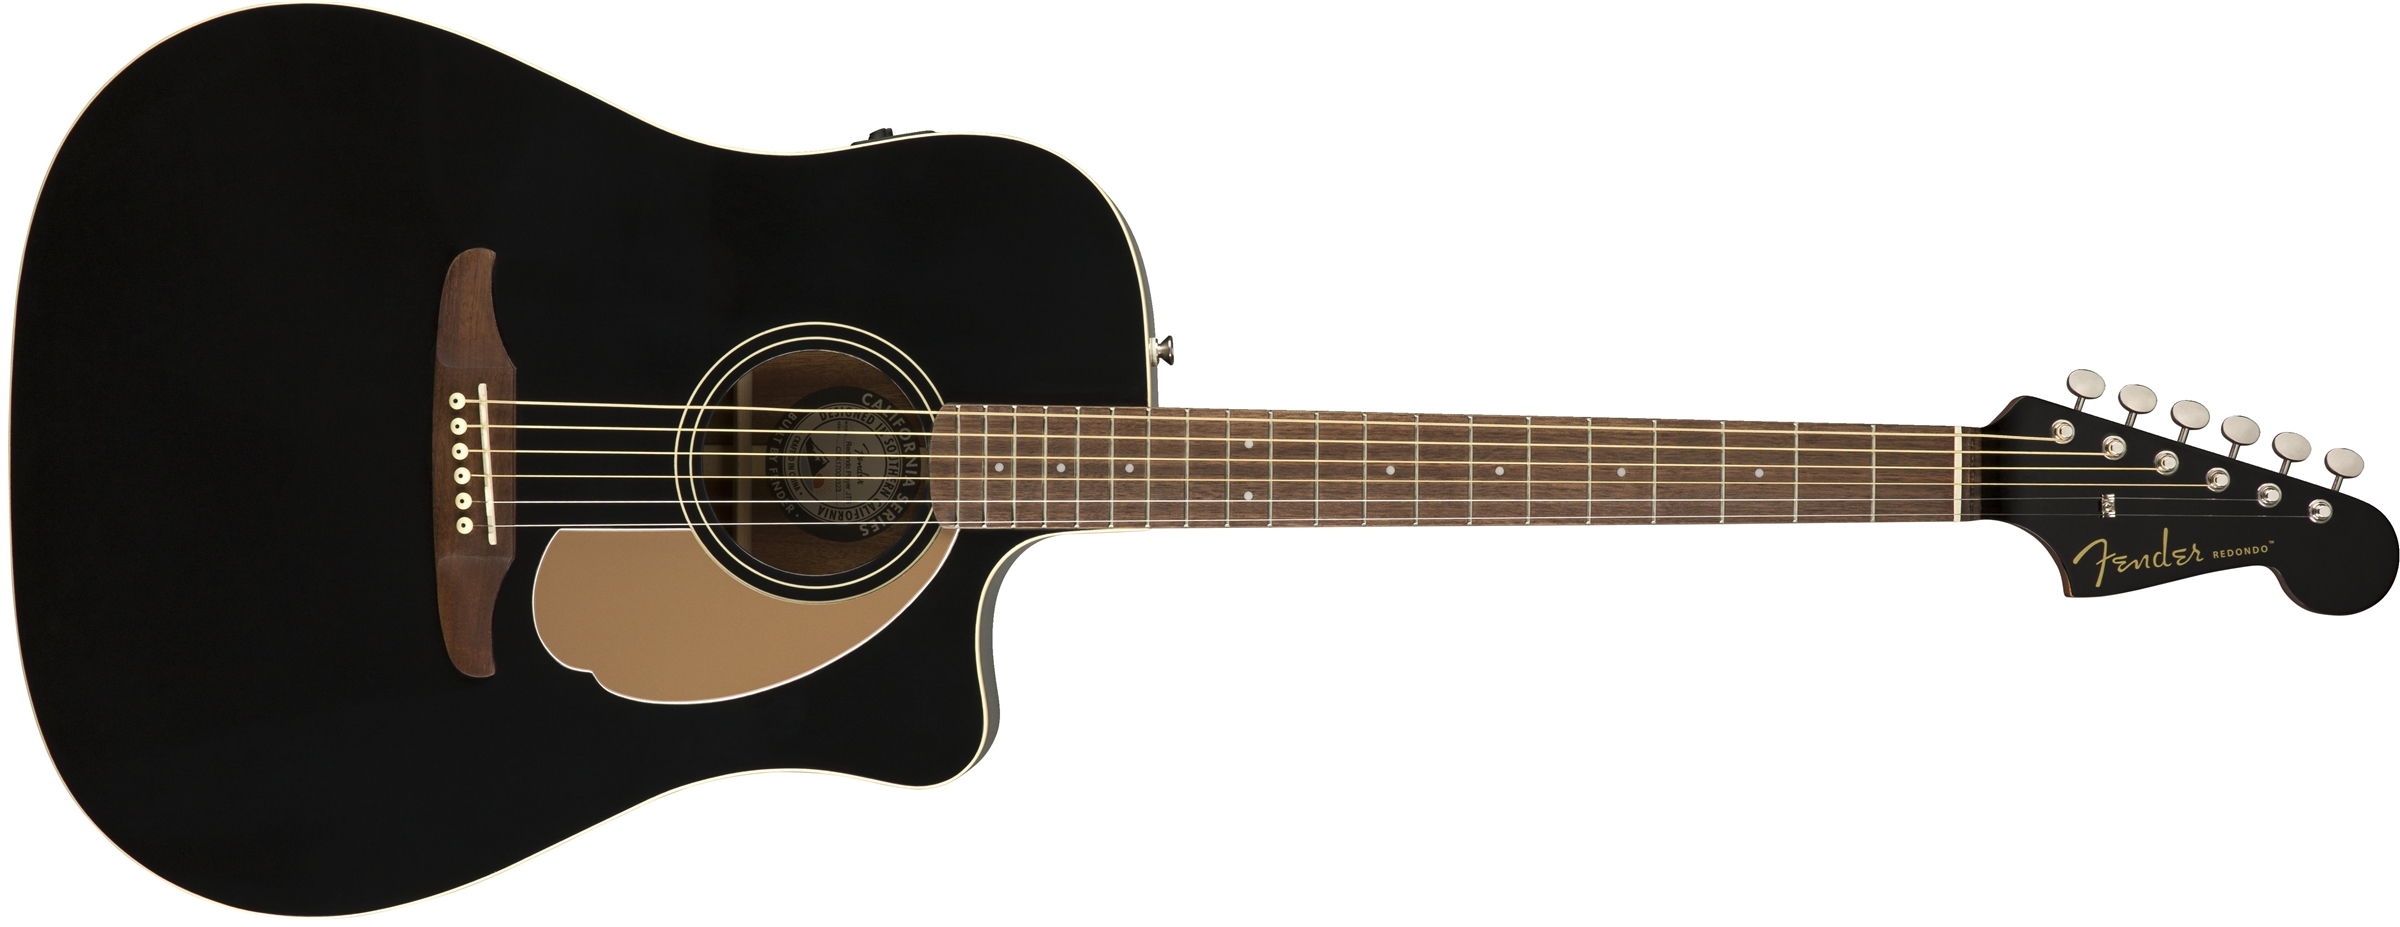 Fender Redondo Player Jetty Black WN elektro-akustinė gitara